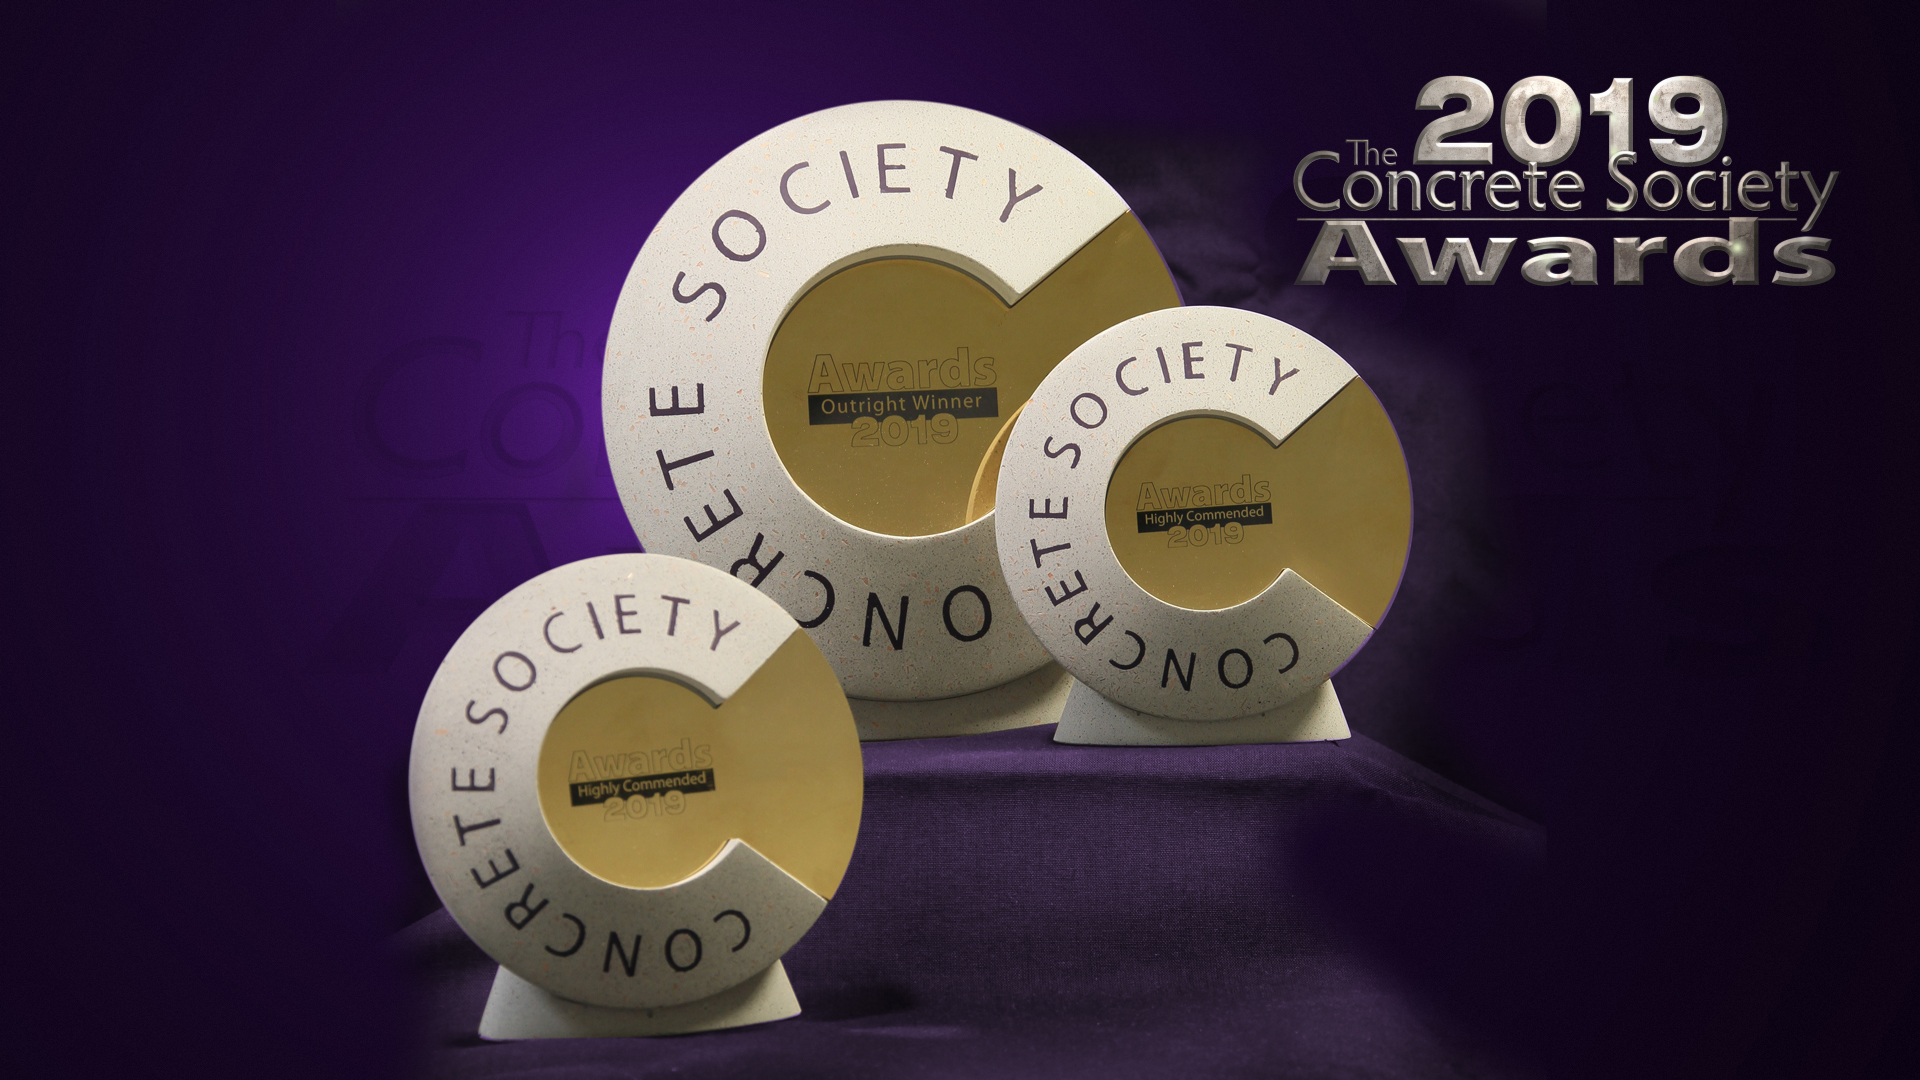 Concrete Society 2019 Awards Trophies